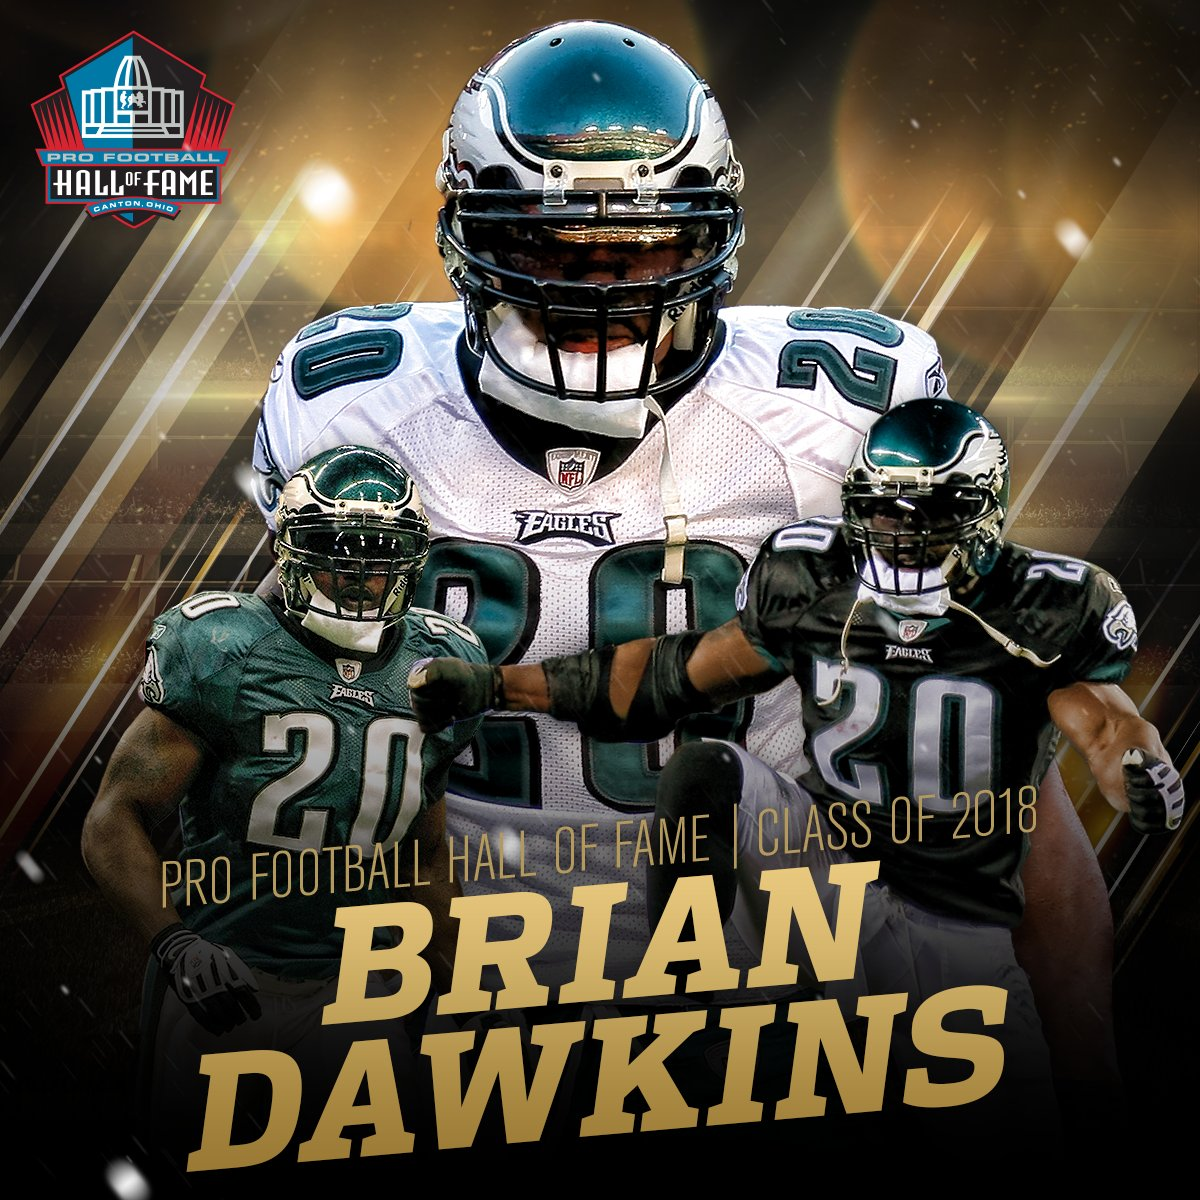 .@BrianDawkins is heading to the @ProFootballHOF! #PFHOF18